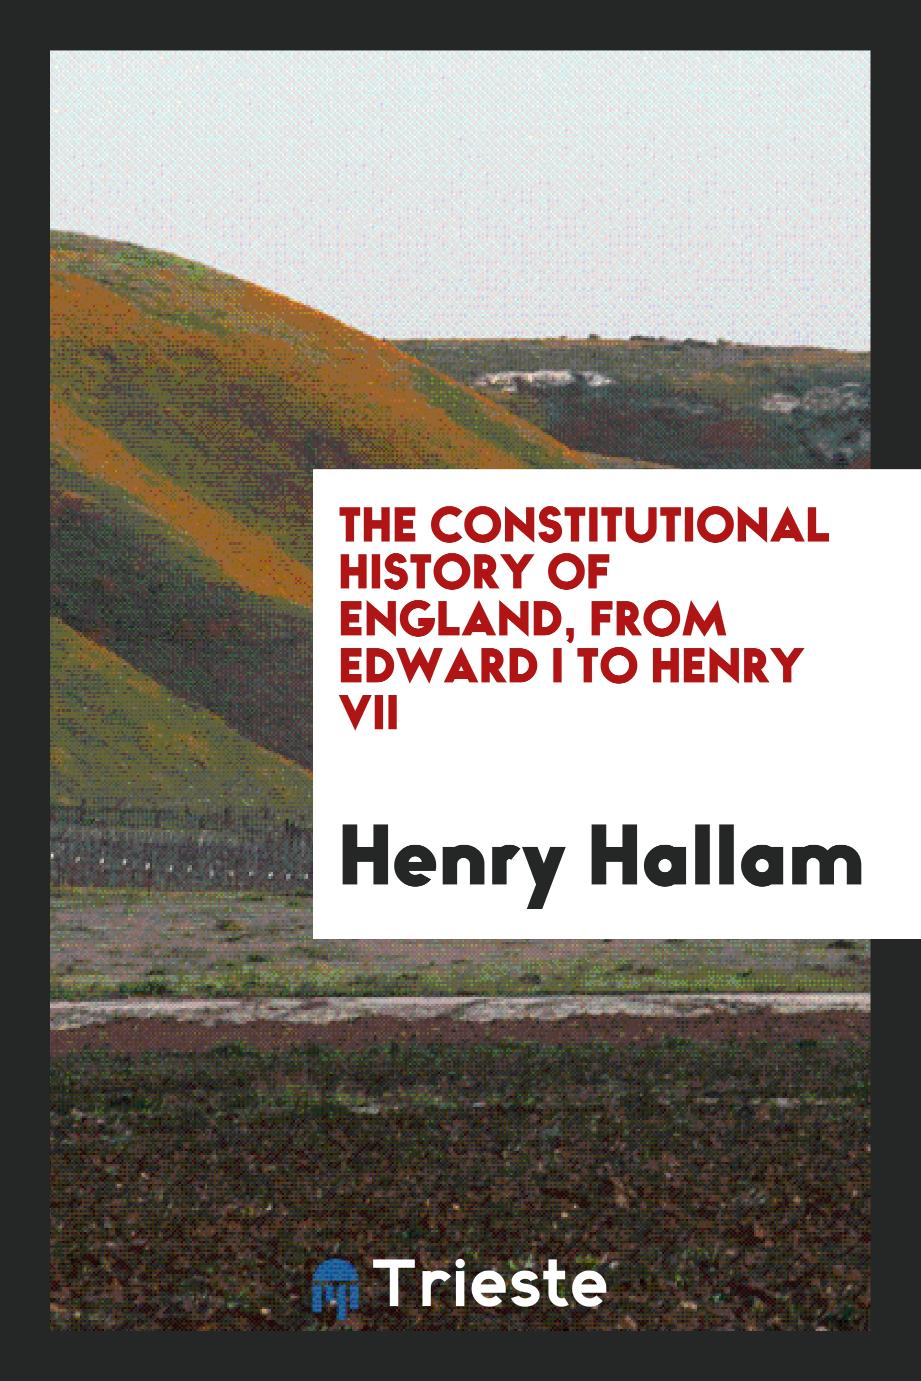 The Constitutional History of England, from Edward I to Henry VII